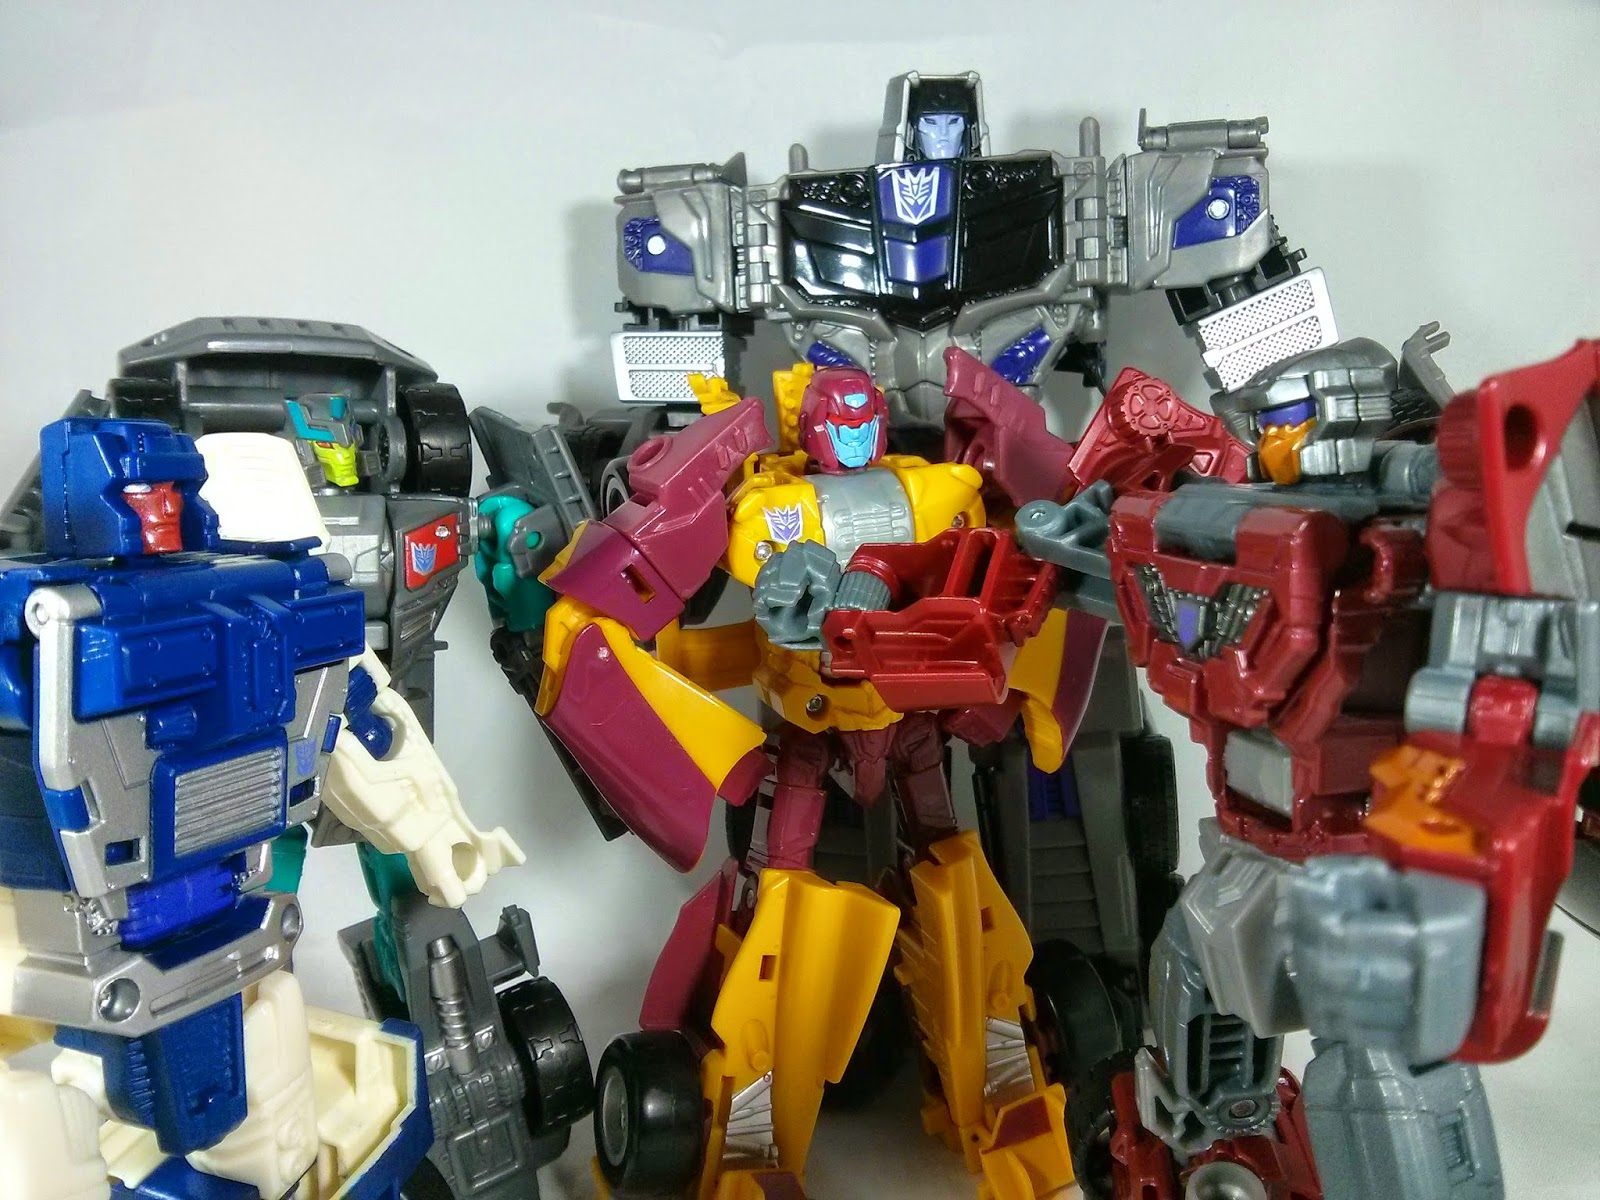 The Stunticon group